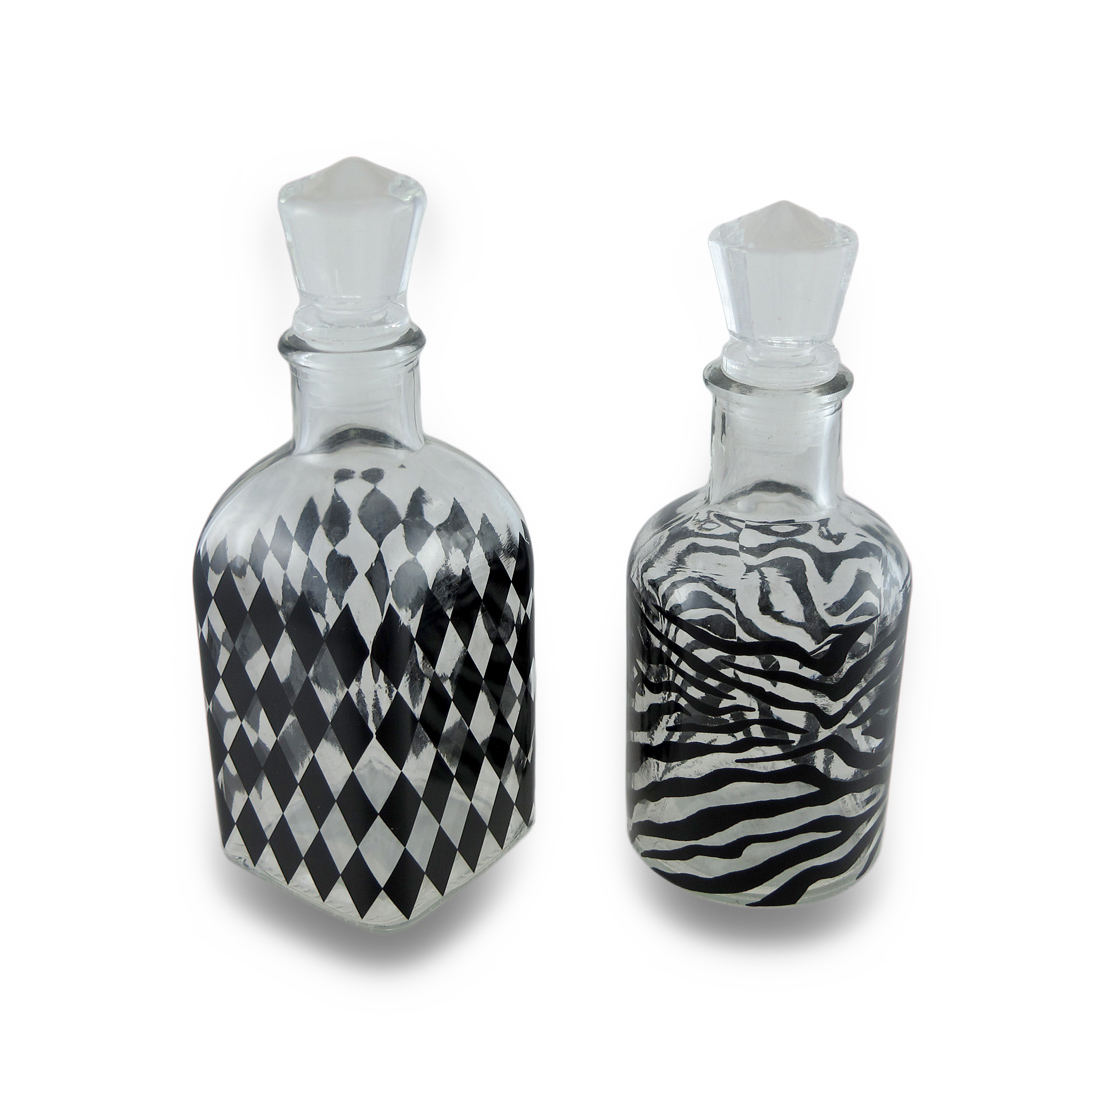 Black & Clear Animal & Harlequin Print Decorative Glass Perfume Bottle Set of 2 by Housewares International, Inc.